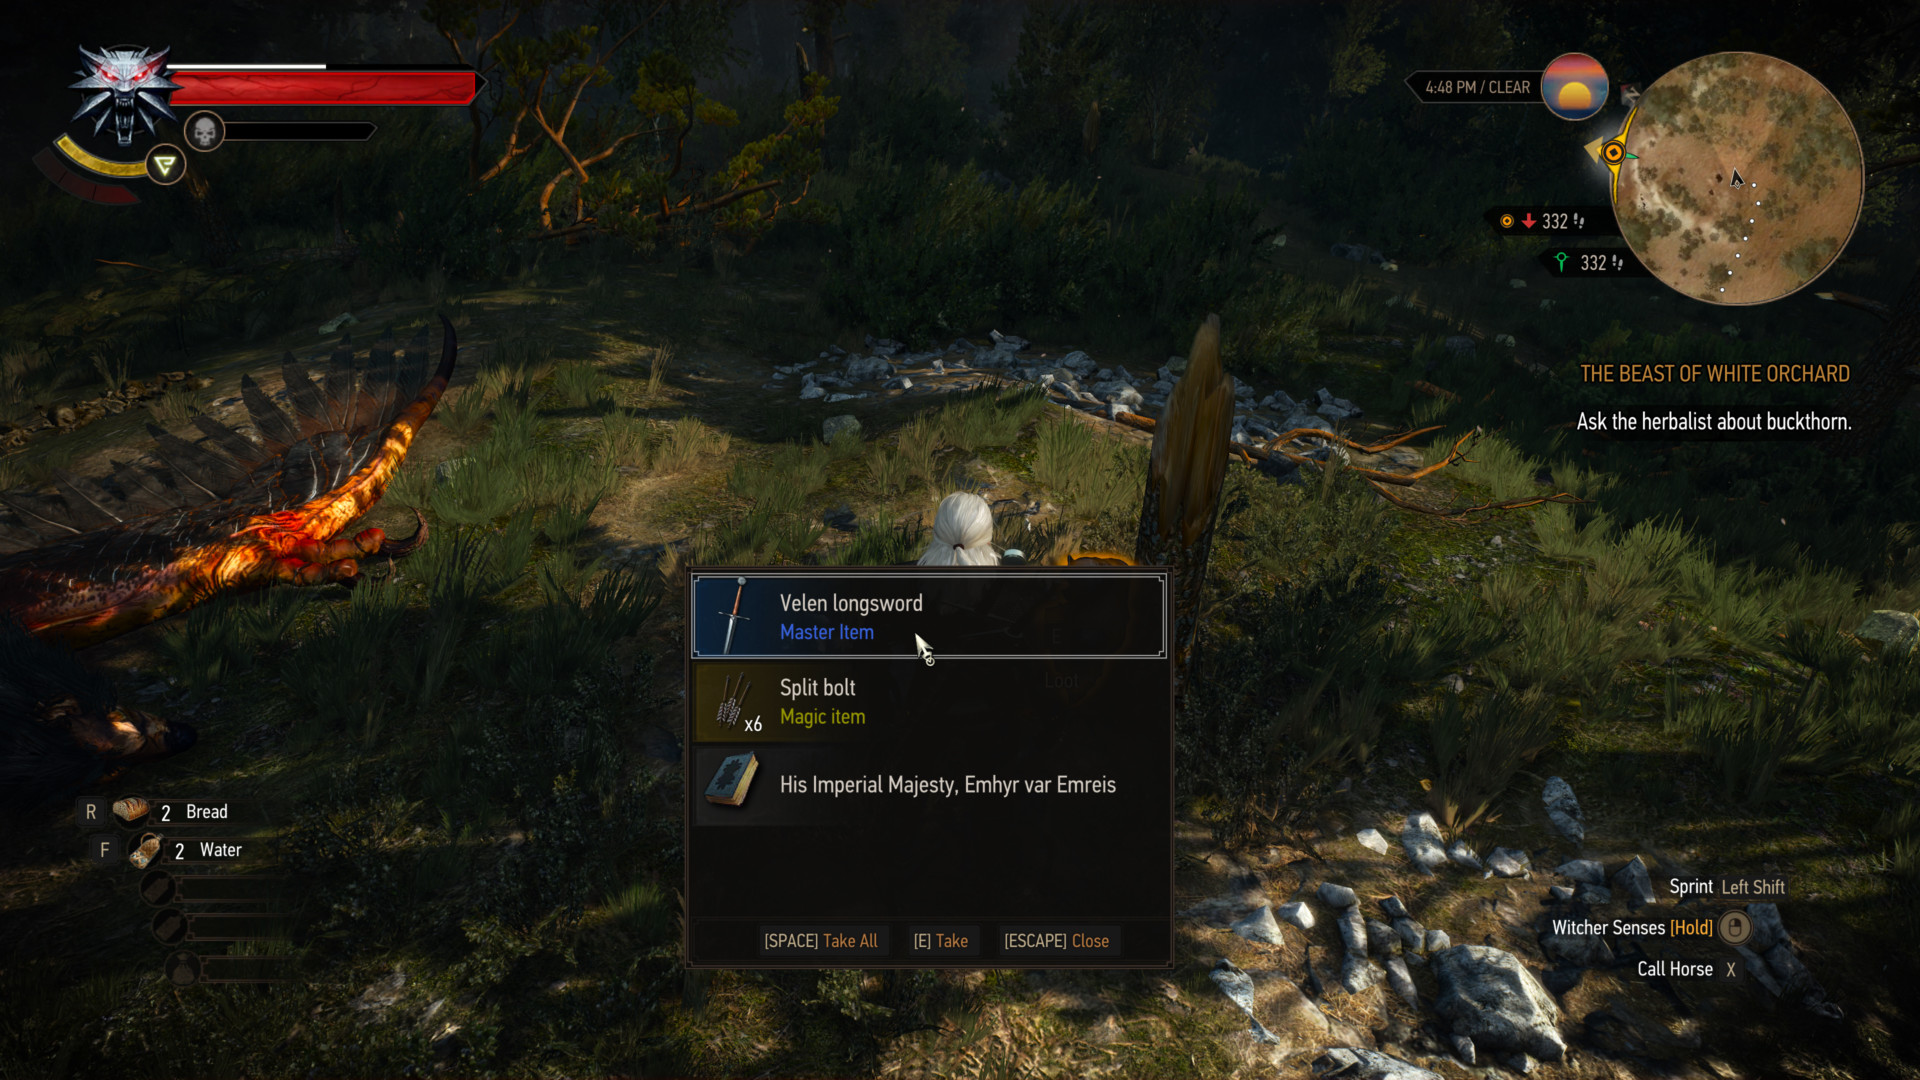 Loot screenshot of The Witcher 3: Wild Hunt video game interface.